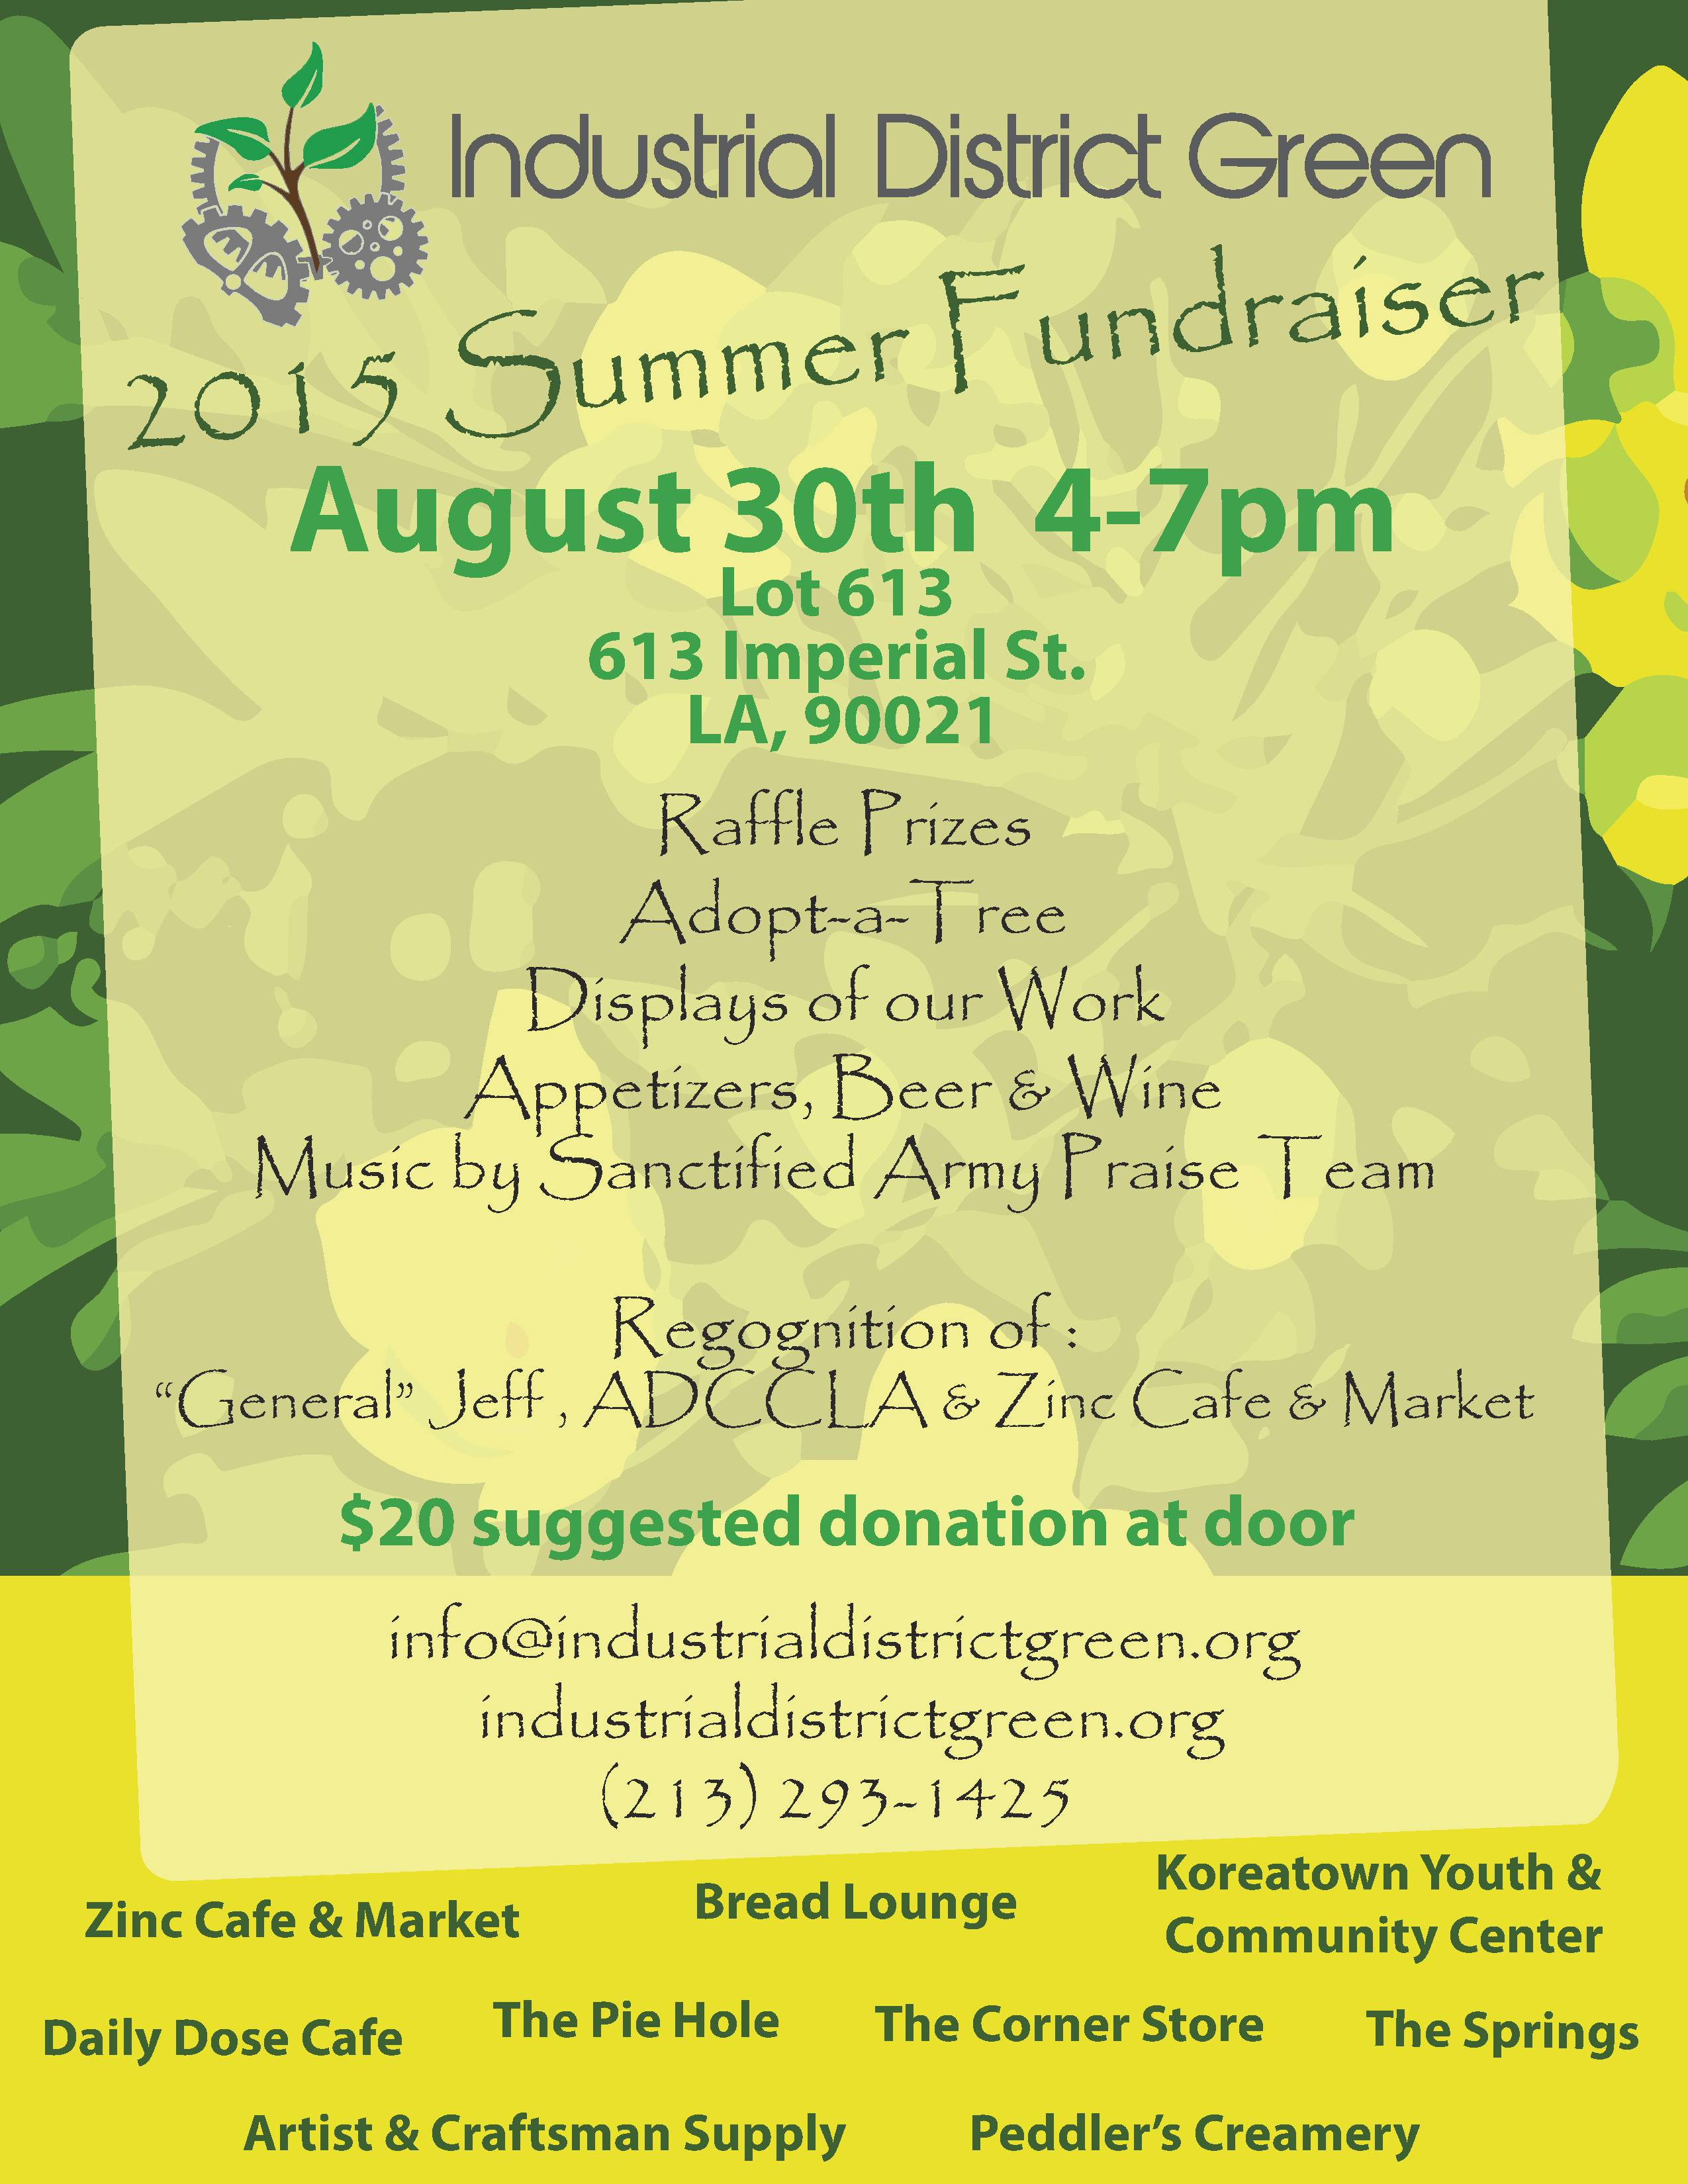 2015_Summer_Fundraiser_for_IDG.jpg